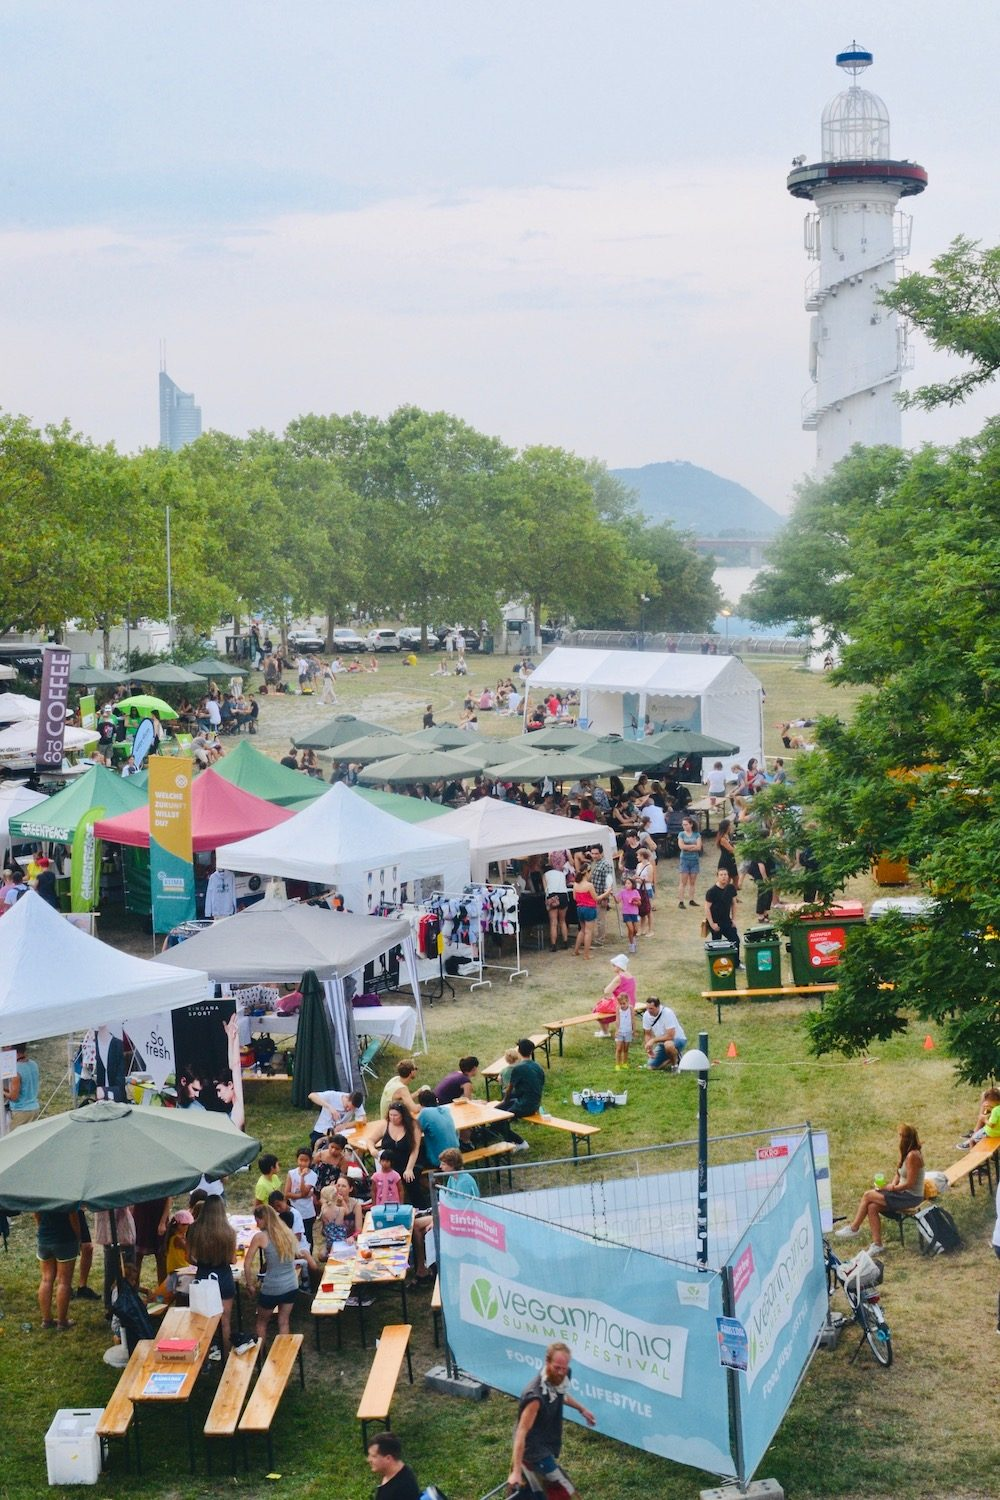 The festival seen from a bridge over the Danube